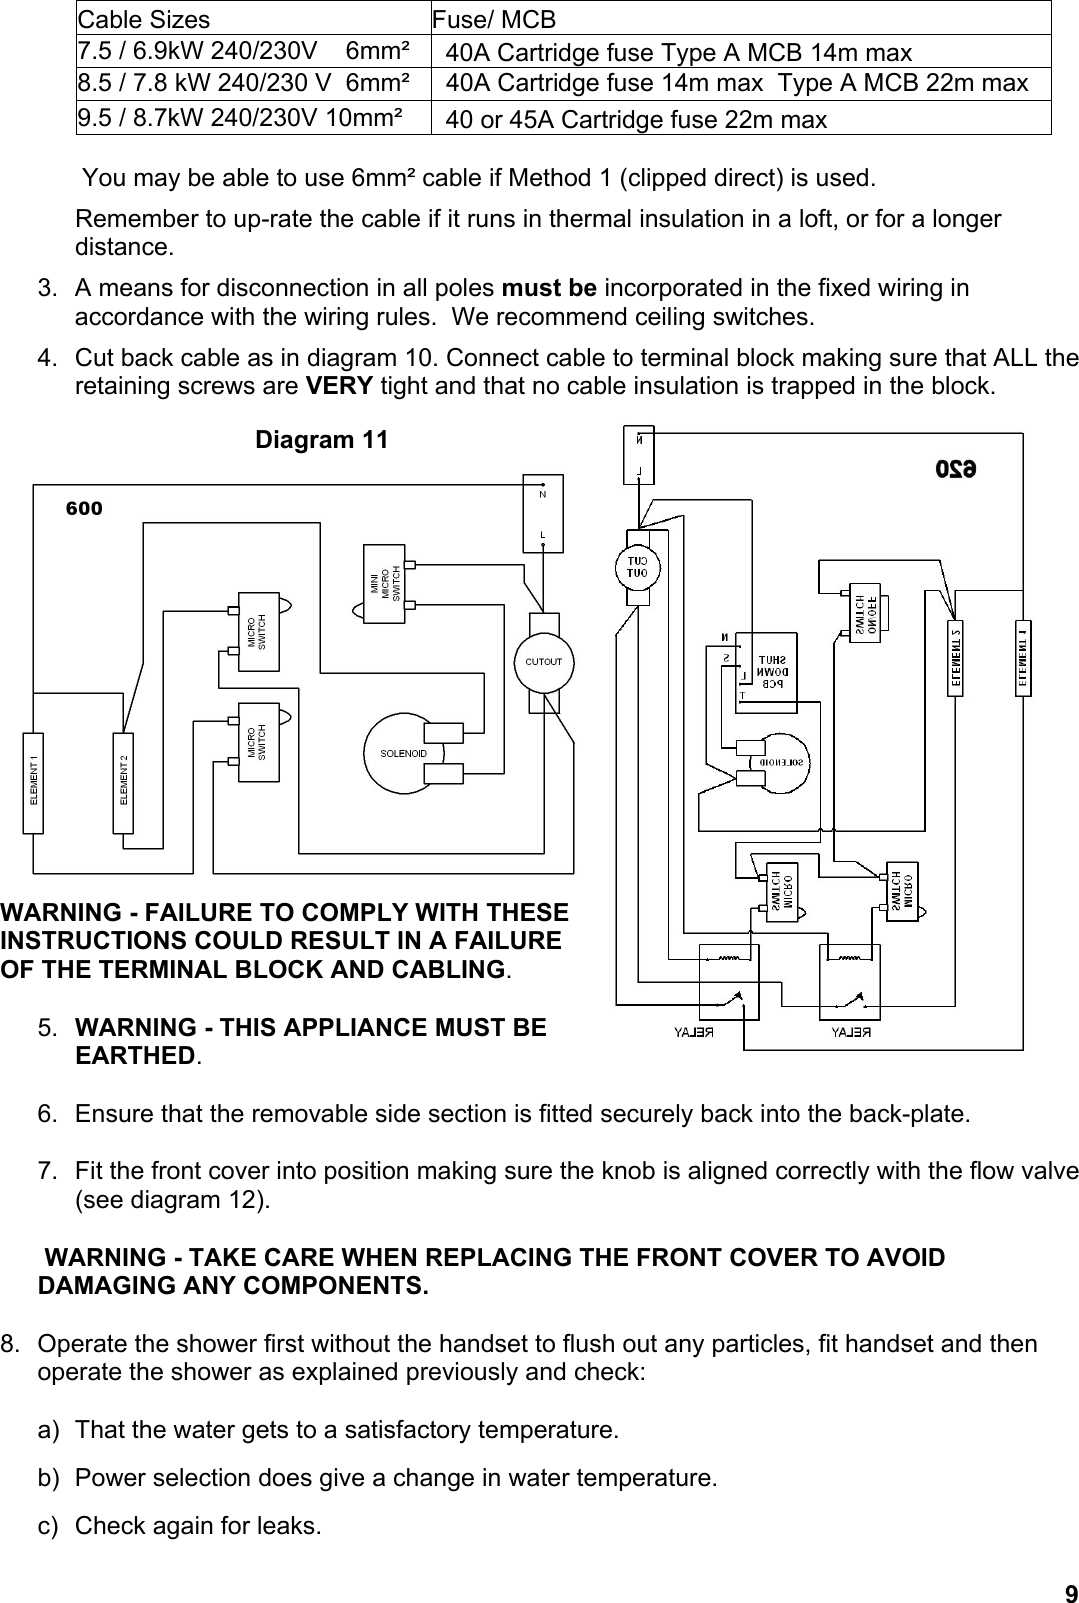 Redring 600 Users Manual 620 Handbook Wiring A Shower Ceiling Switch Page 9 Of 12